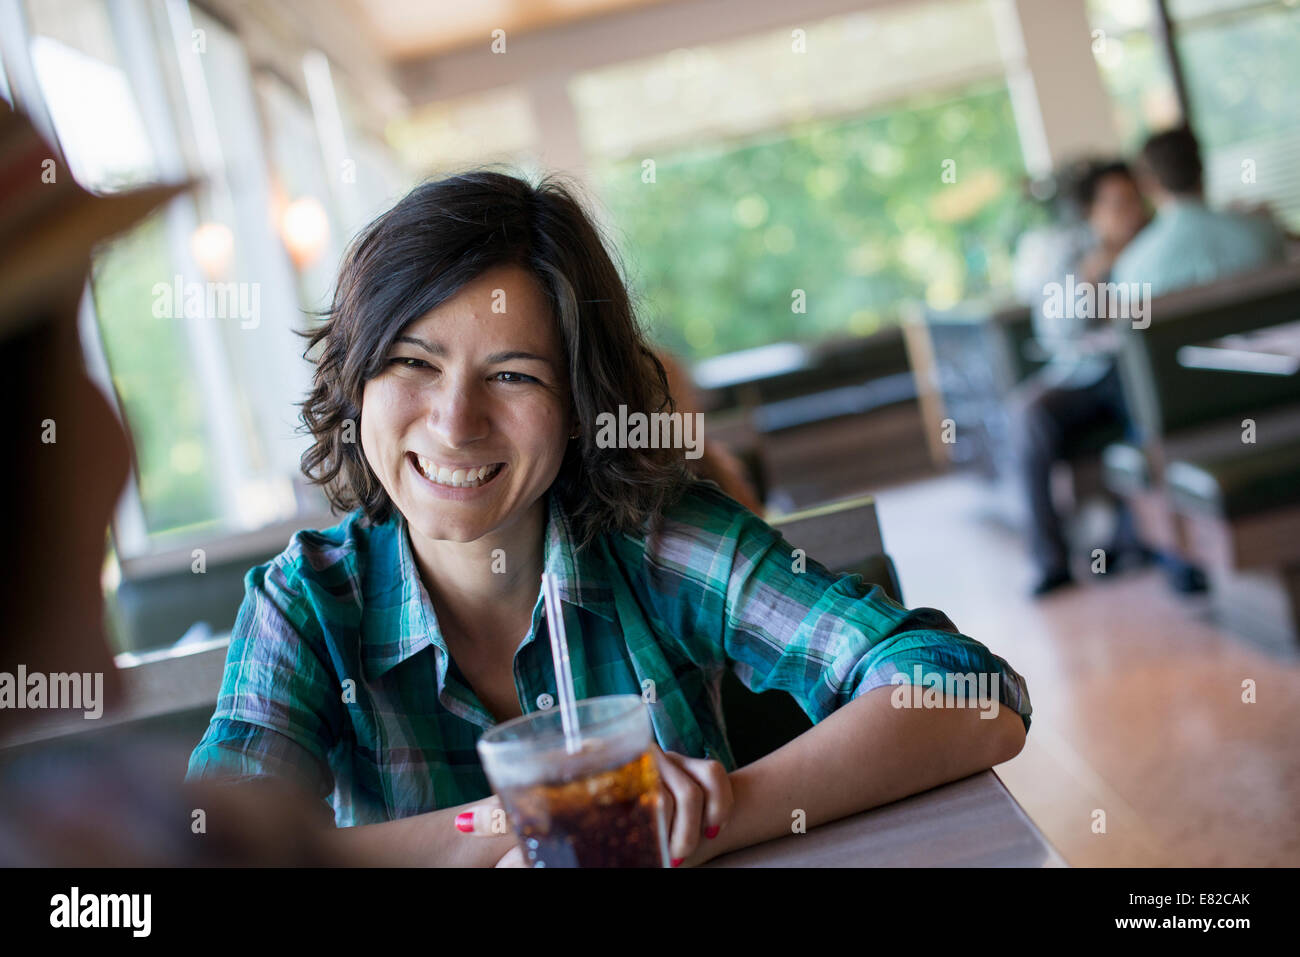 A woman seated holding a cold drink at a diner table. - Stock Image